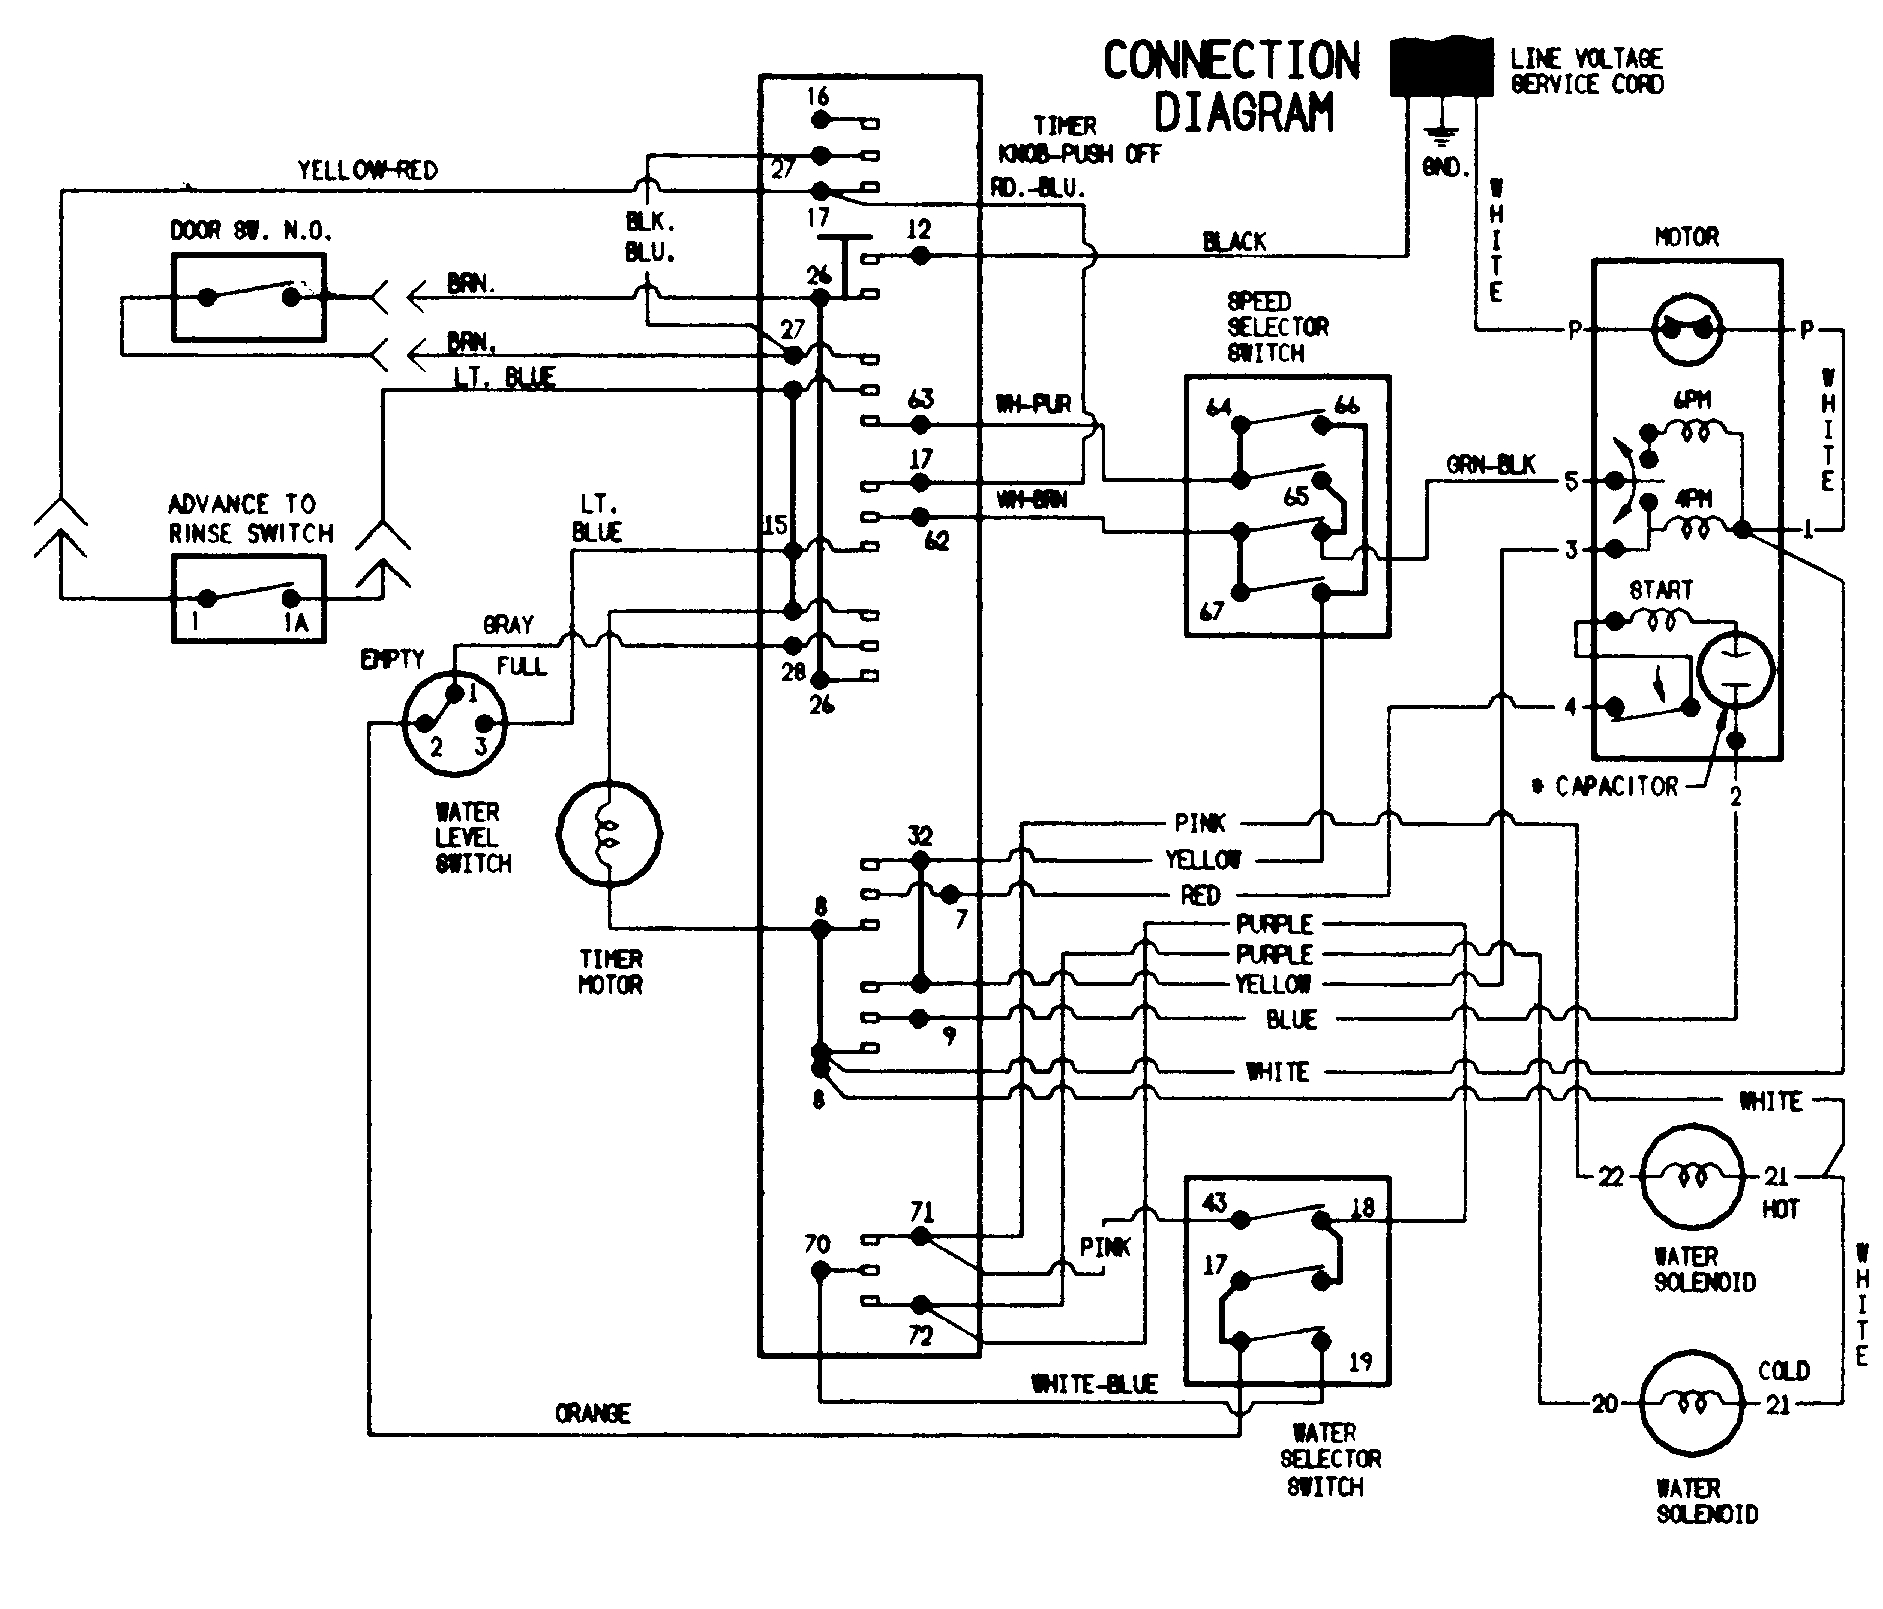 kenmore 80 series dryer parts diagram | automotive parts ... sears dryer wiring diagram sears craftsman wiring diagram